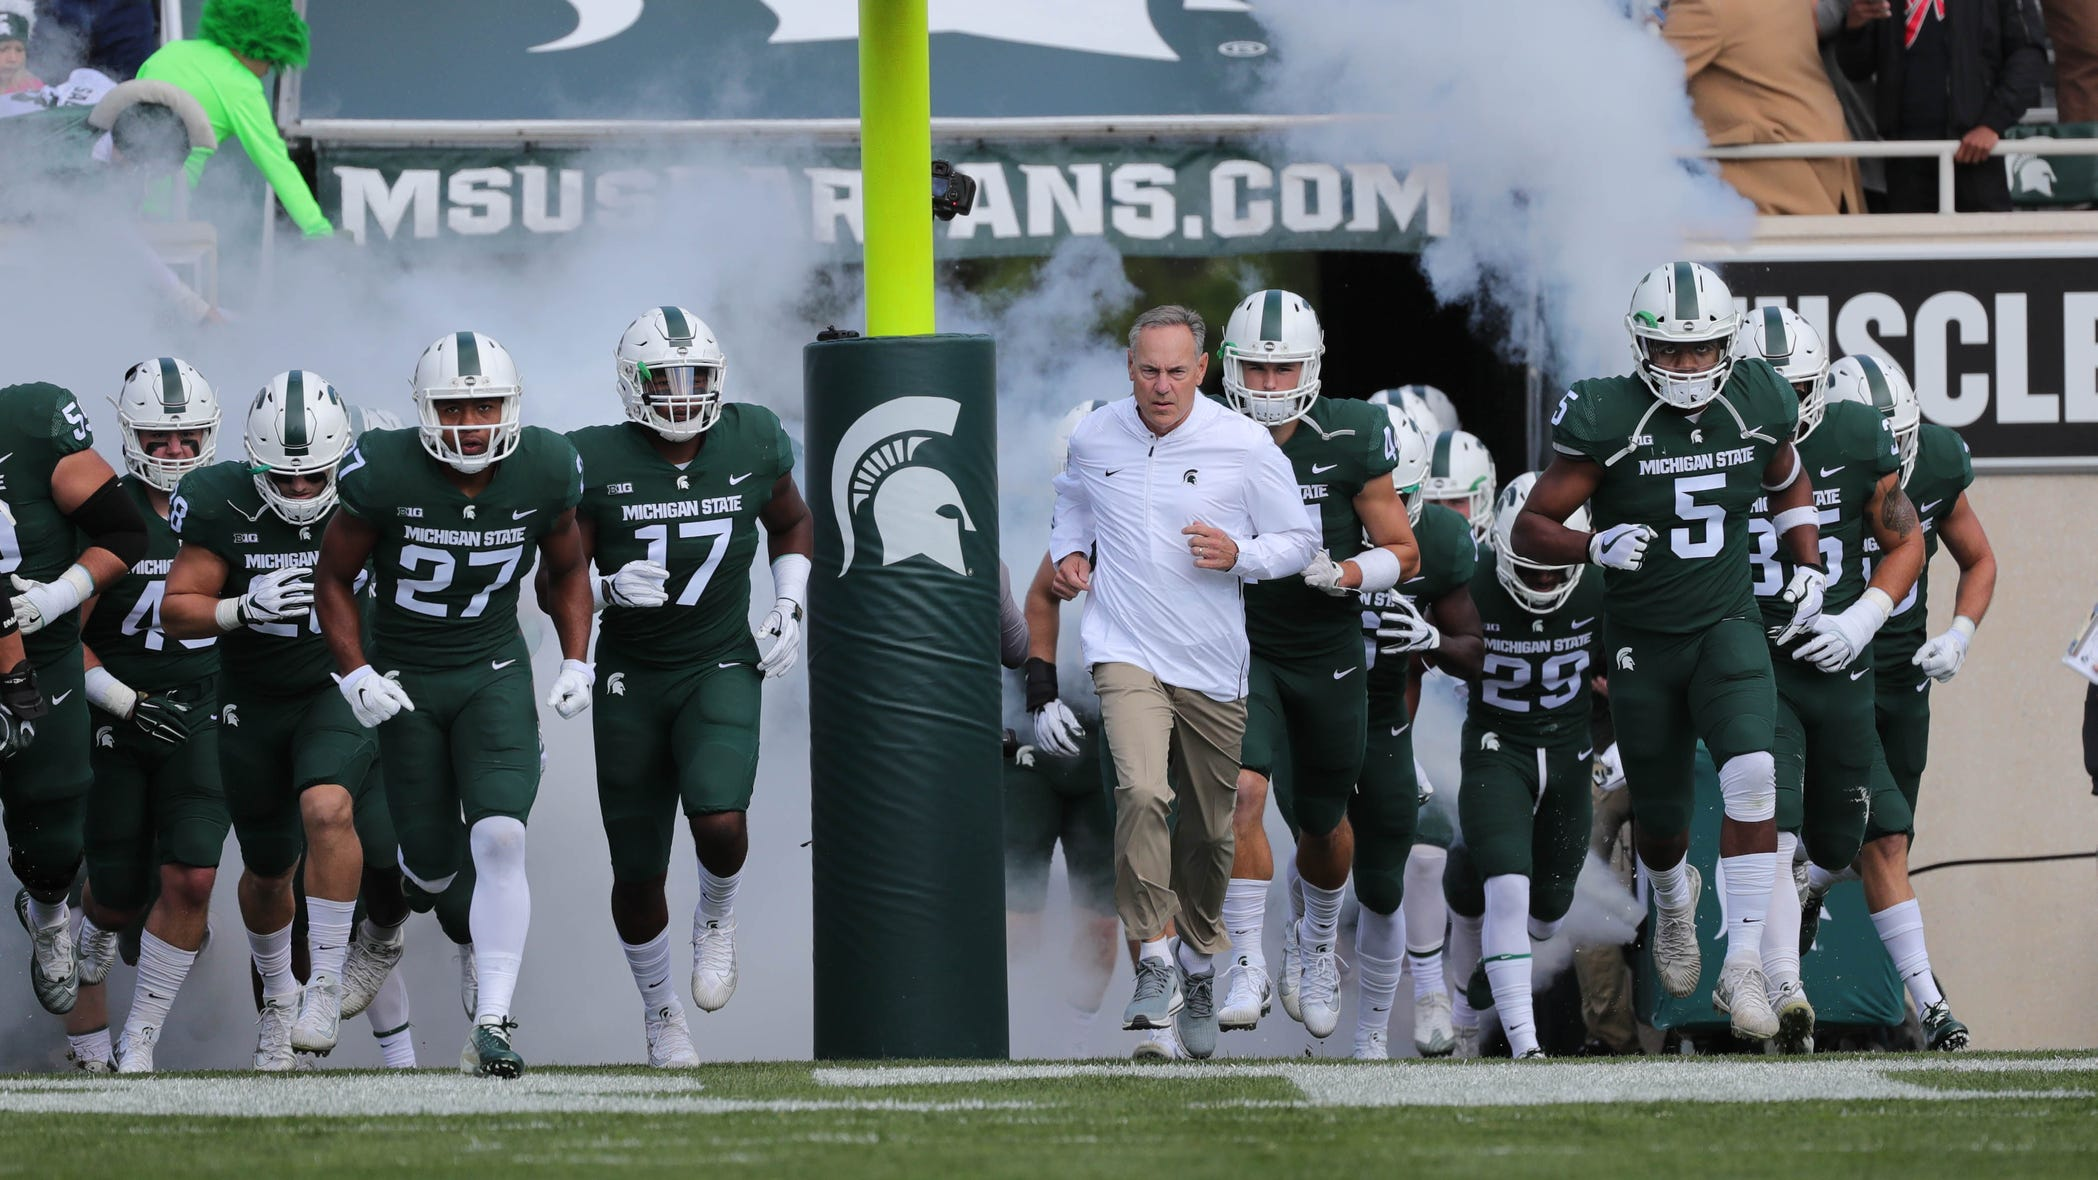 Michigan State Spartans Football Schedule 2019